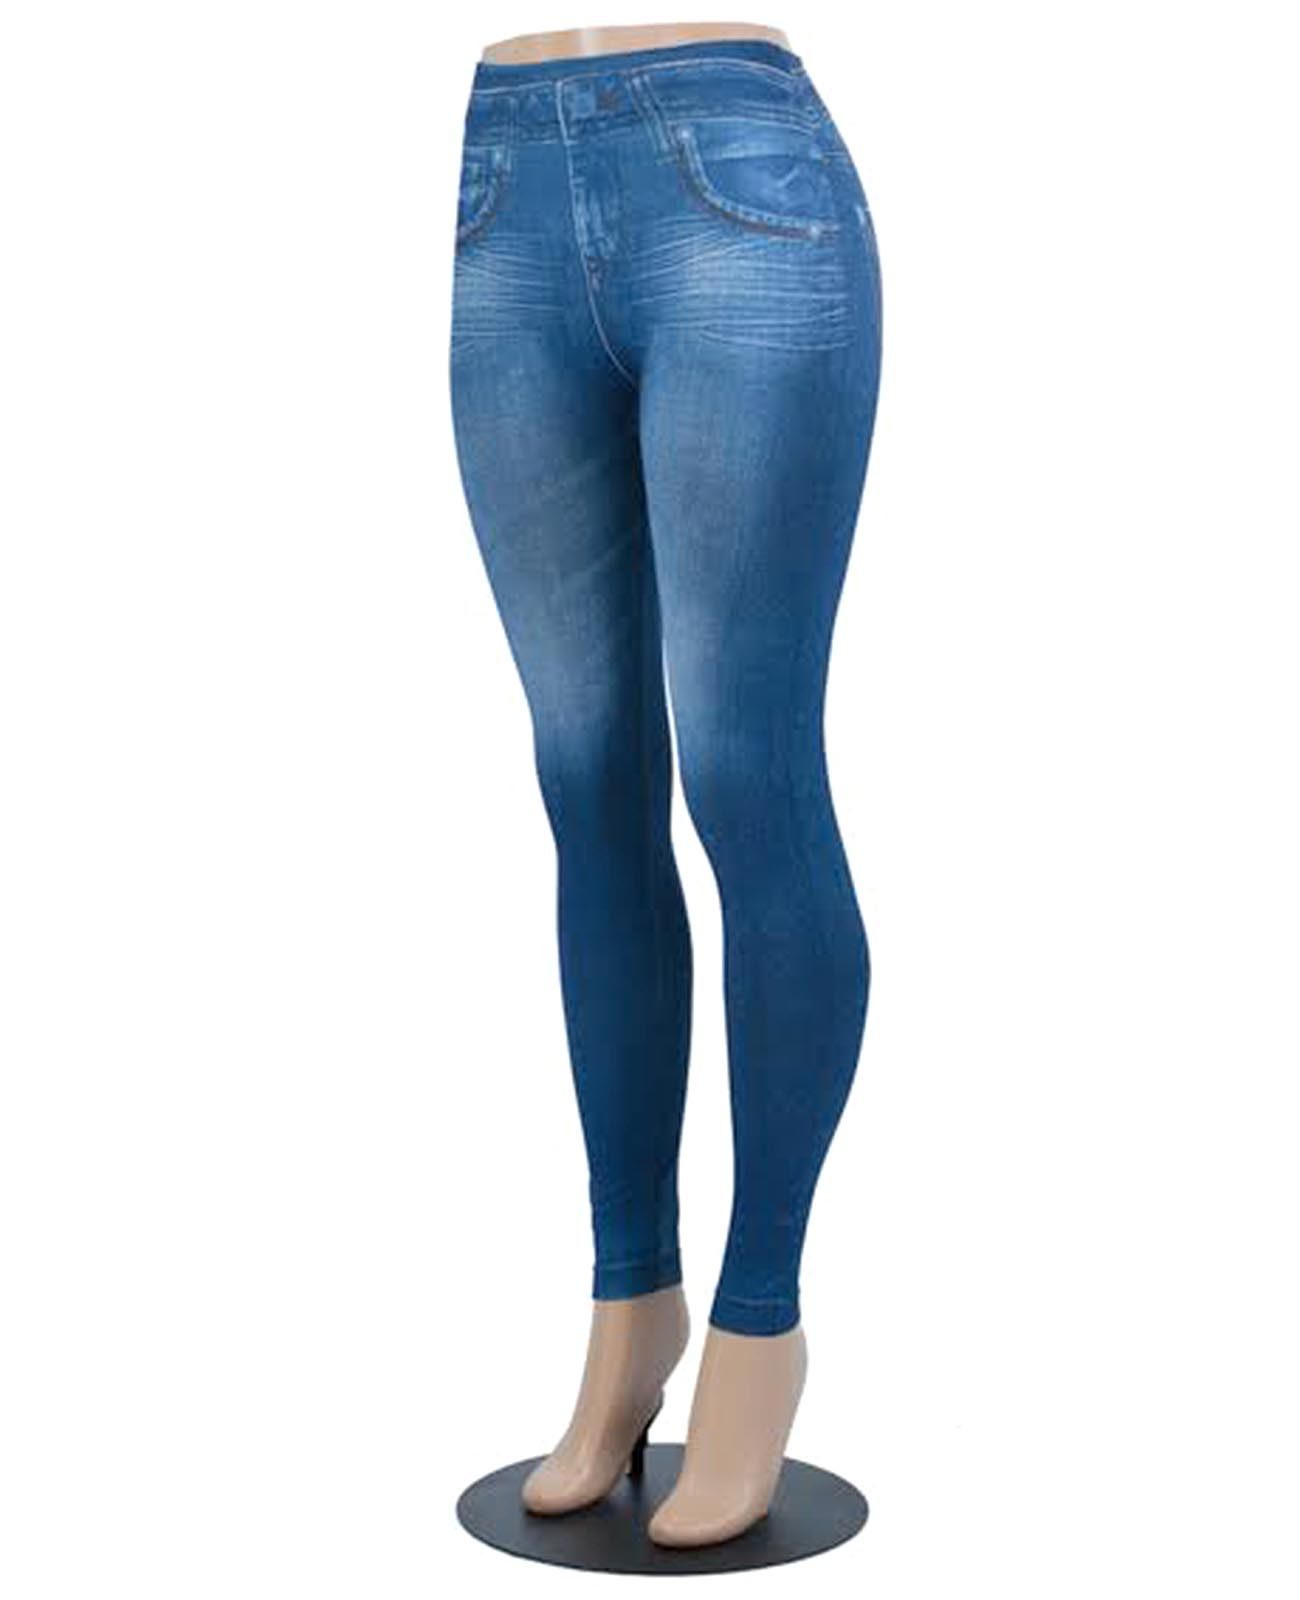 cfdee0a0592d5 Blue / 95% Polyester, 5% Spandex / Stretchy Pants That Are Printed To Look  Like Jeans / One Size / Jegging